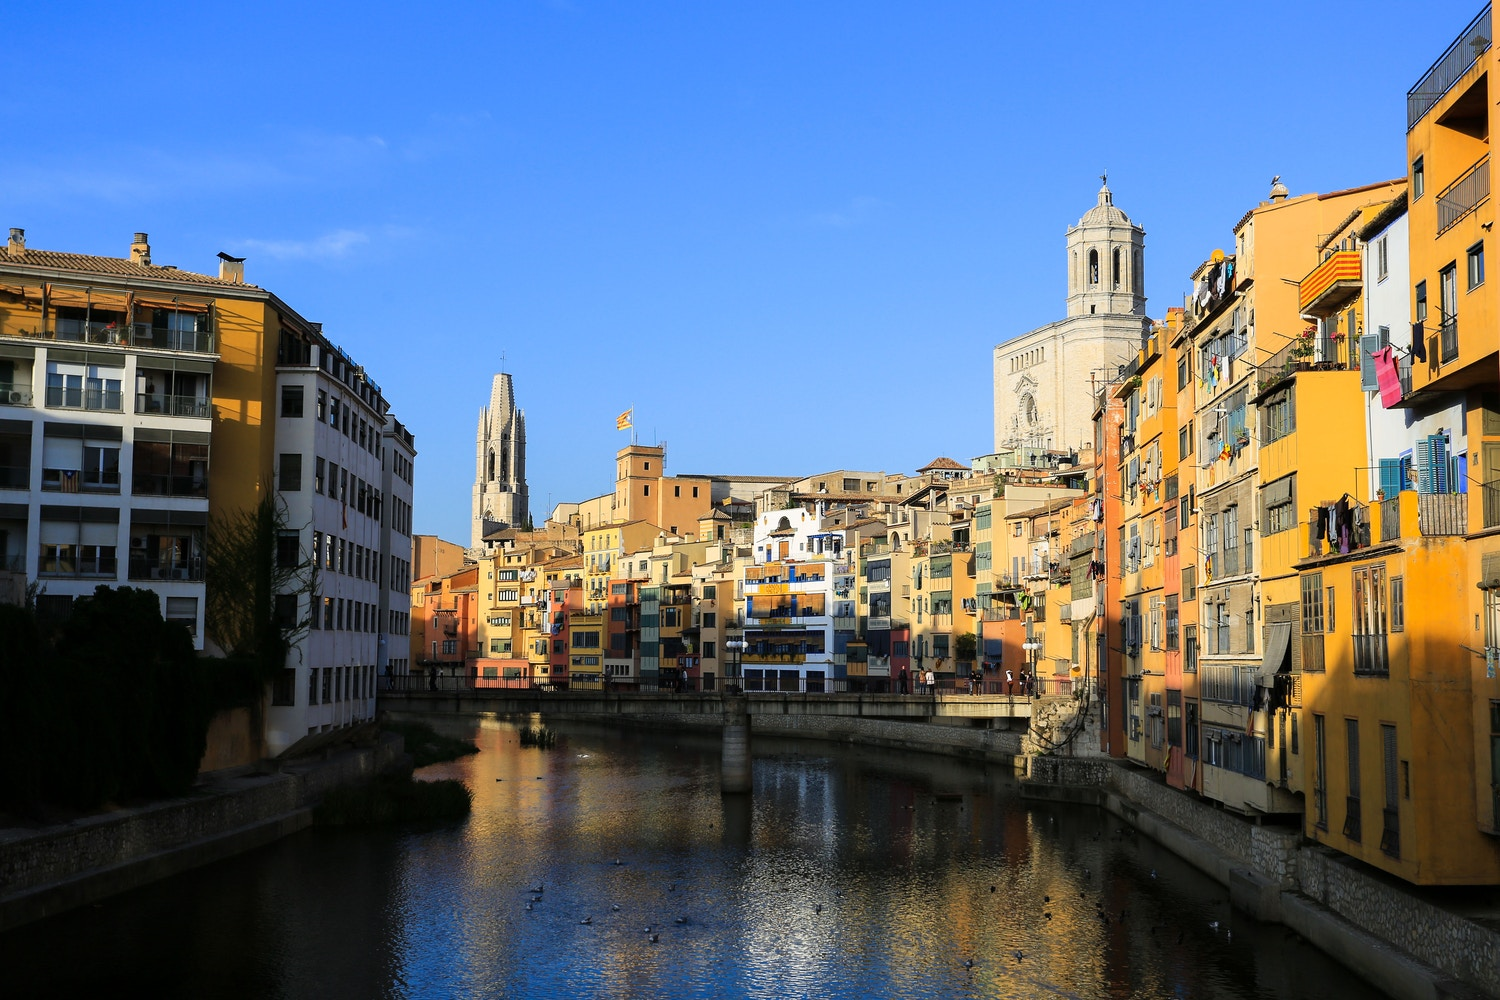 Girona - Rennrad-Paradies mit antikem Flair